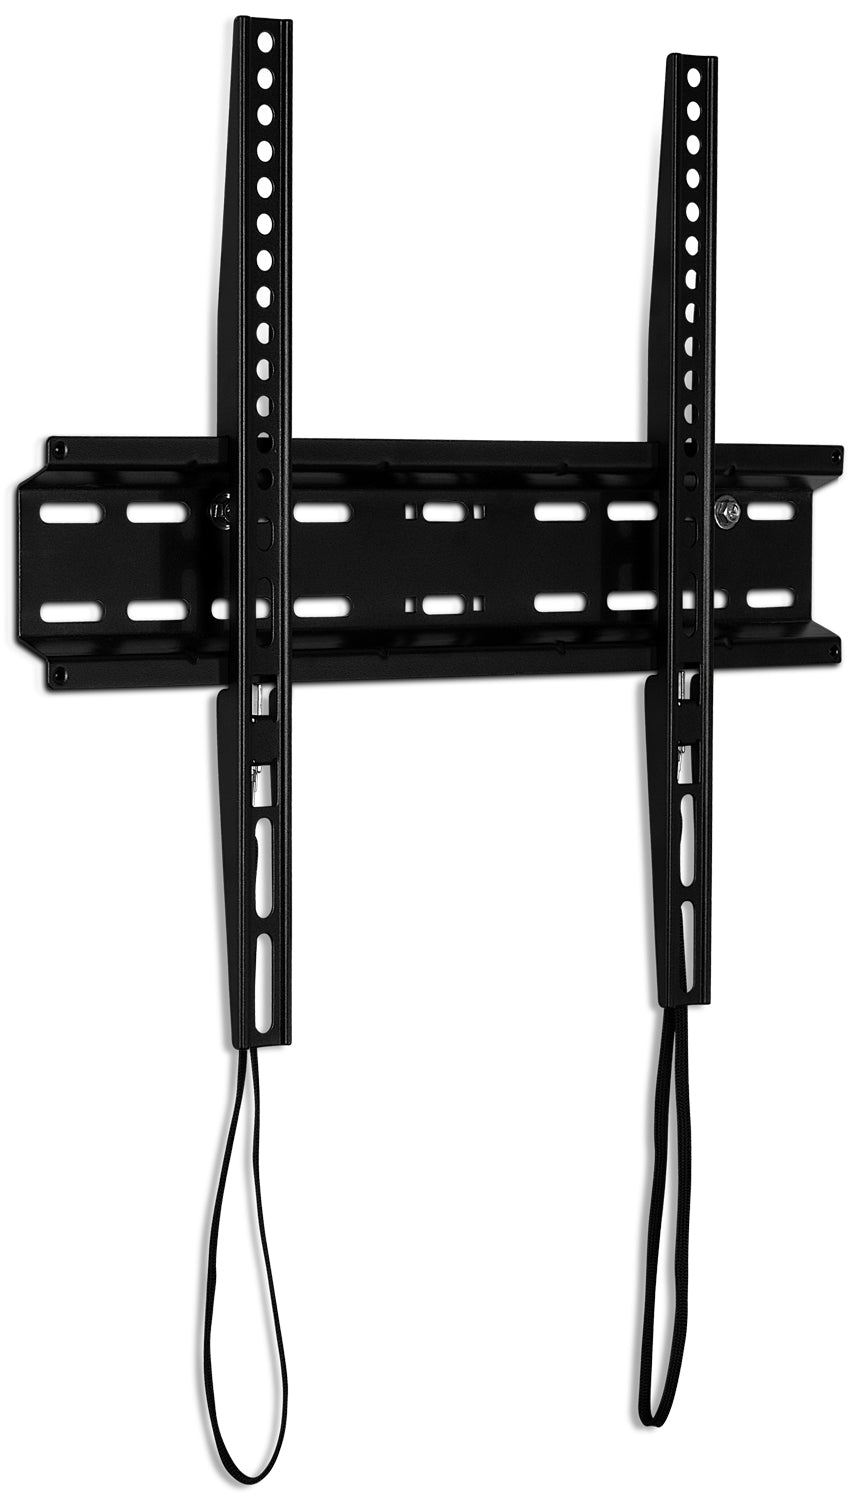 Mount-It! Low Profile Slim TV Wall Mount Fixed TV Bracket - MI-3050 - Mount-It!